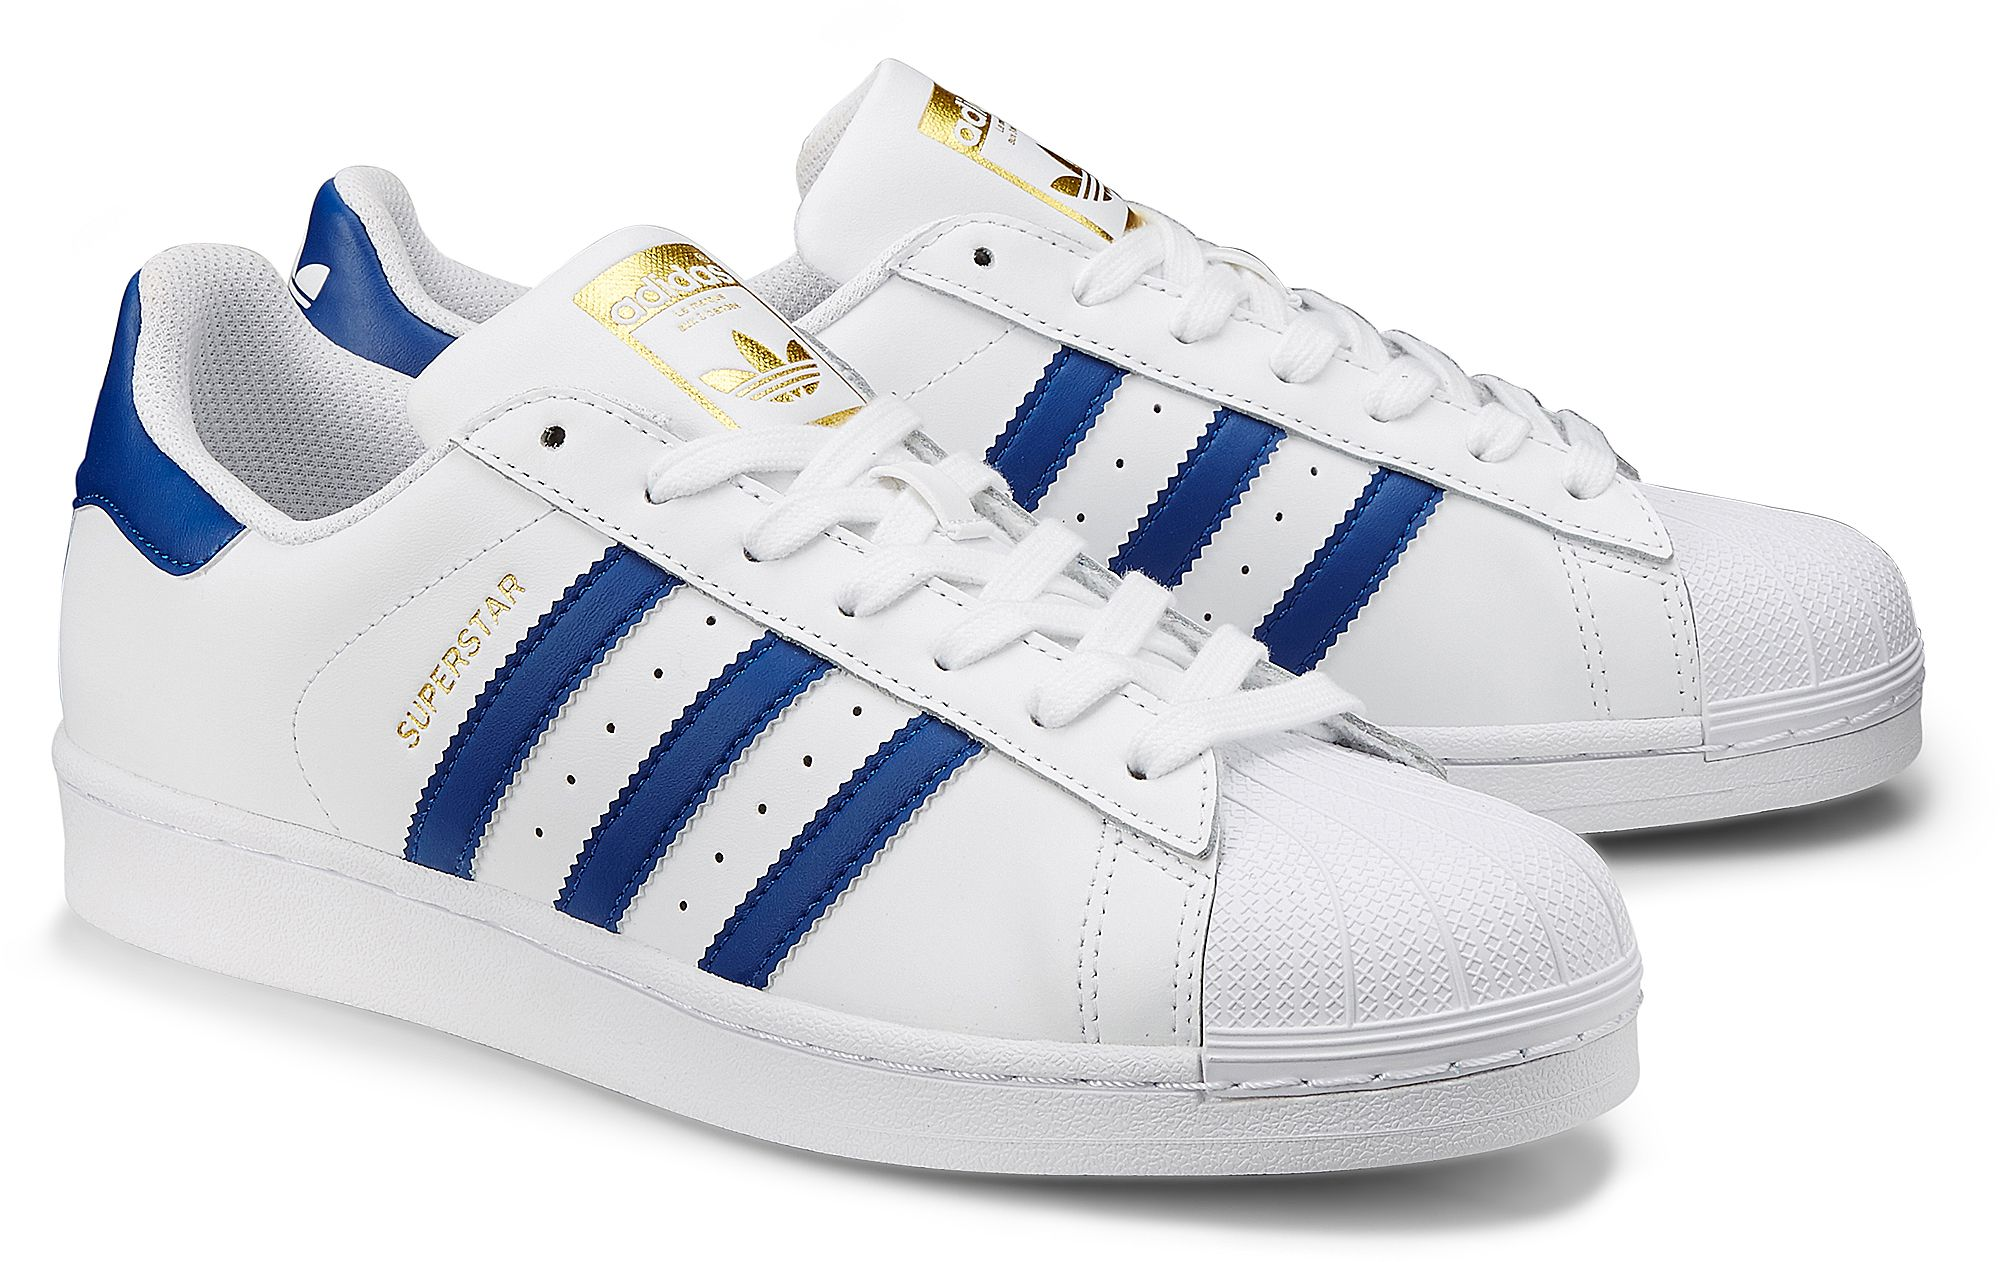 Von Sneaker In Superstar Weiß Originals Für 1 Adidas HerrenGr41 HD2IE9